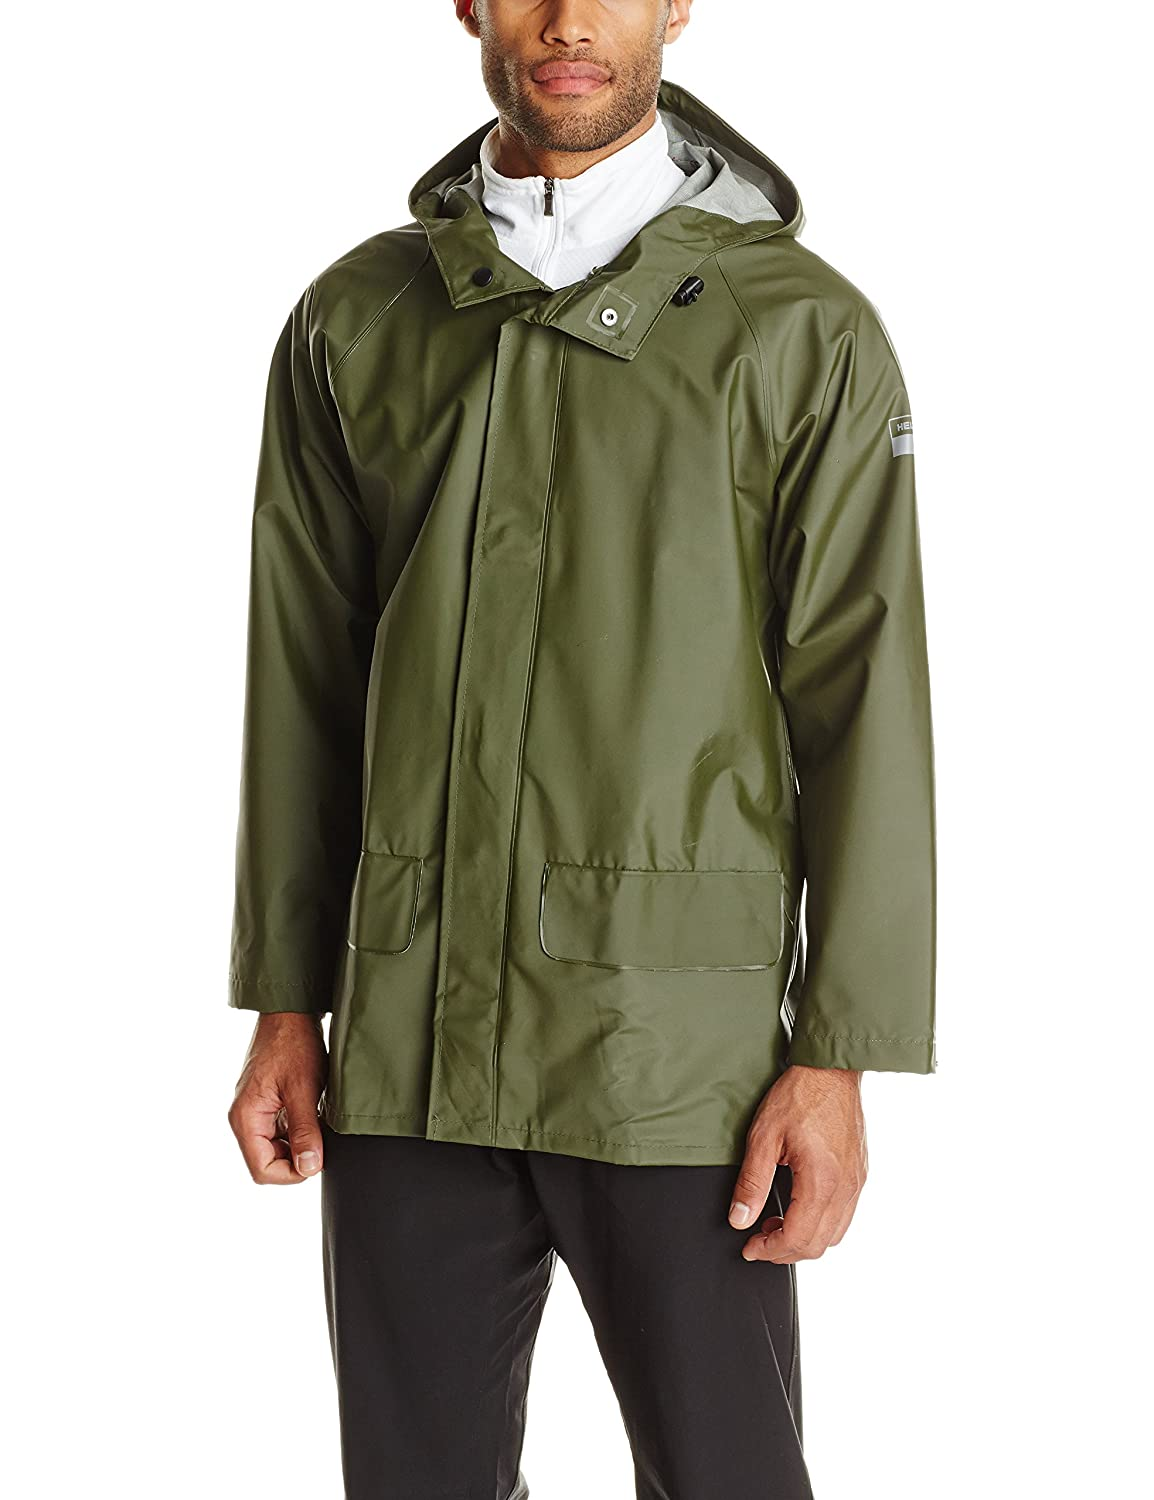 Helly Hansen Workwear Men's Mandal Durable Waterproof Hooded Rain Coat Jacket for Hunting and Fishing Helly Hansen Work Wear 70129